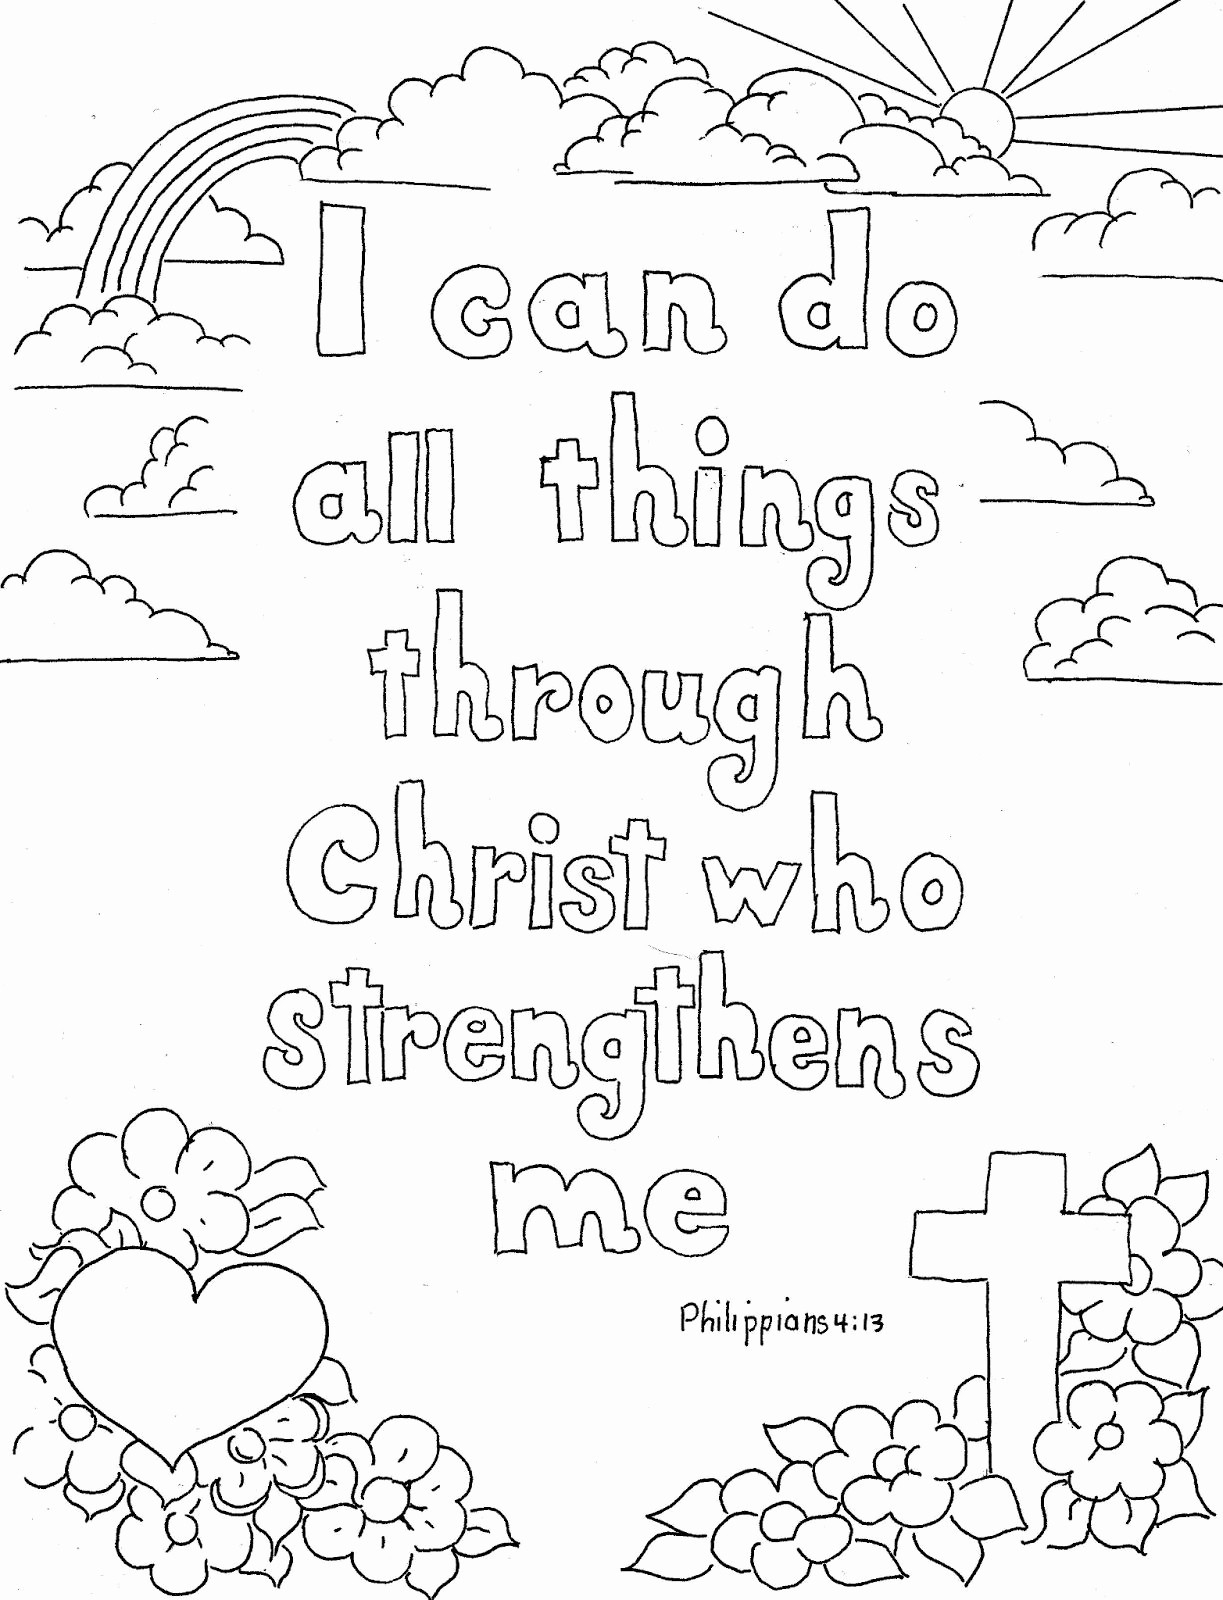 Coloring Pages : Bible Verse Coloring Pages Best Free Printable Of - Free Printable Bible Coloring Pages With Scriptures